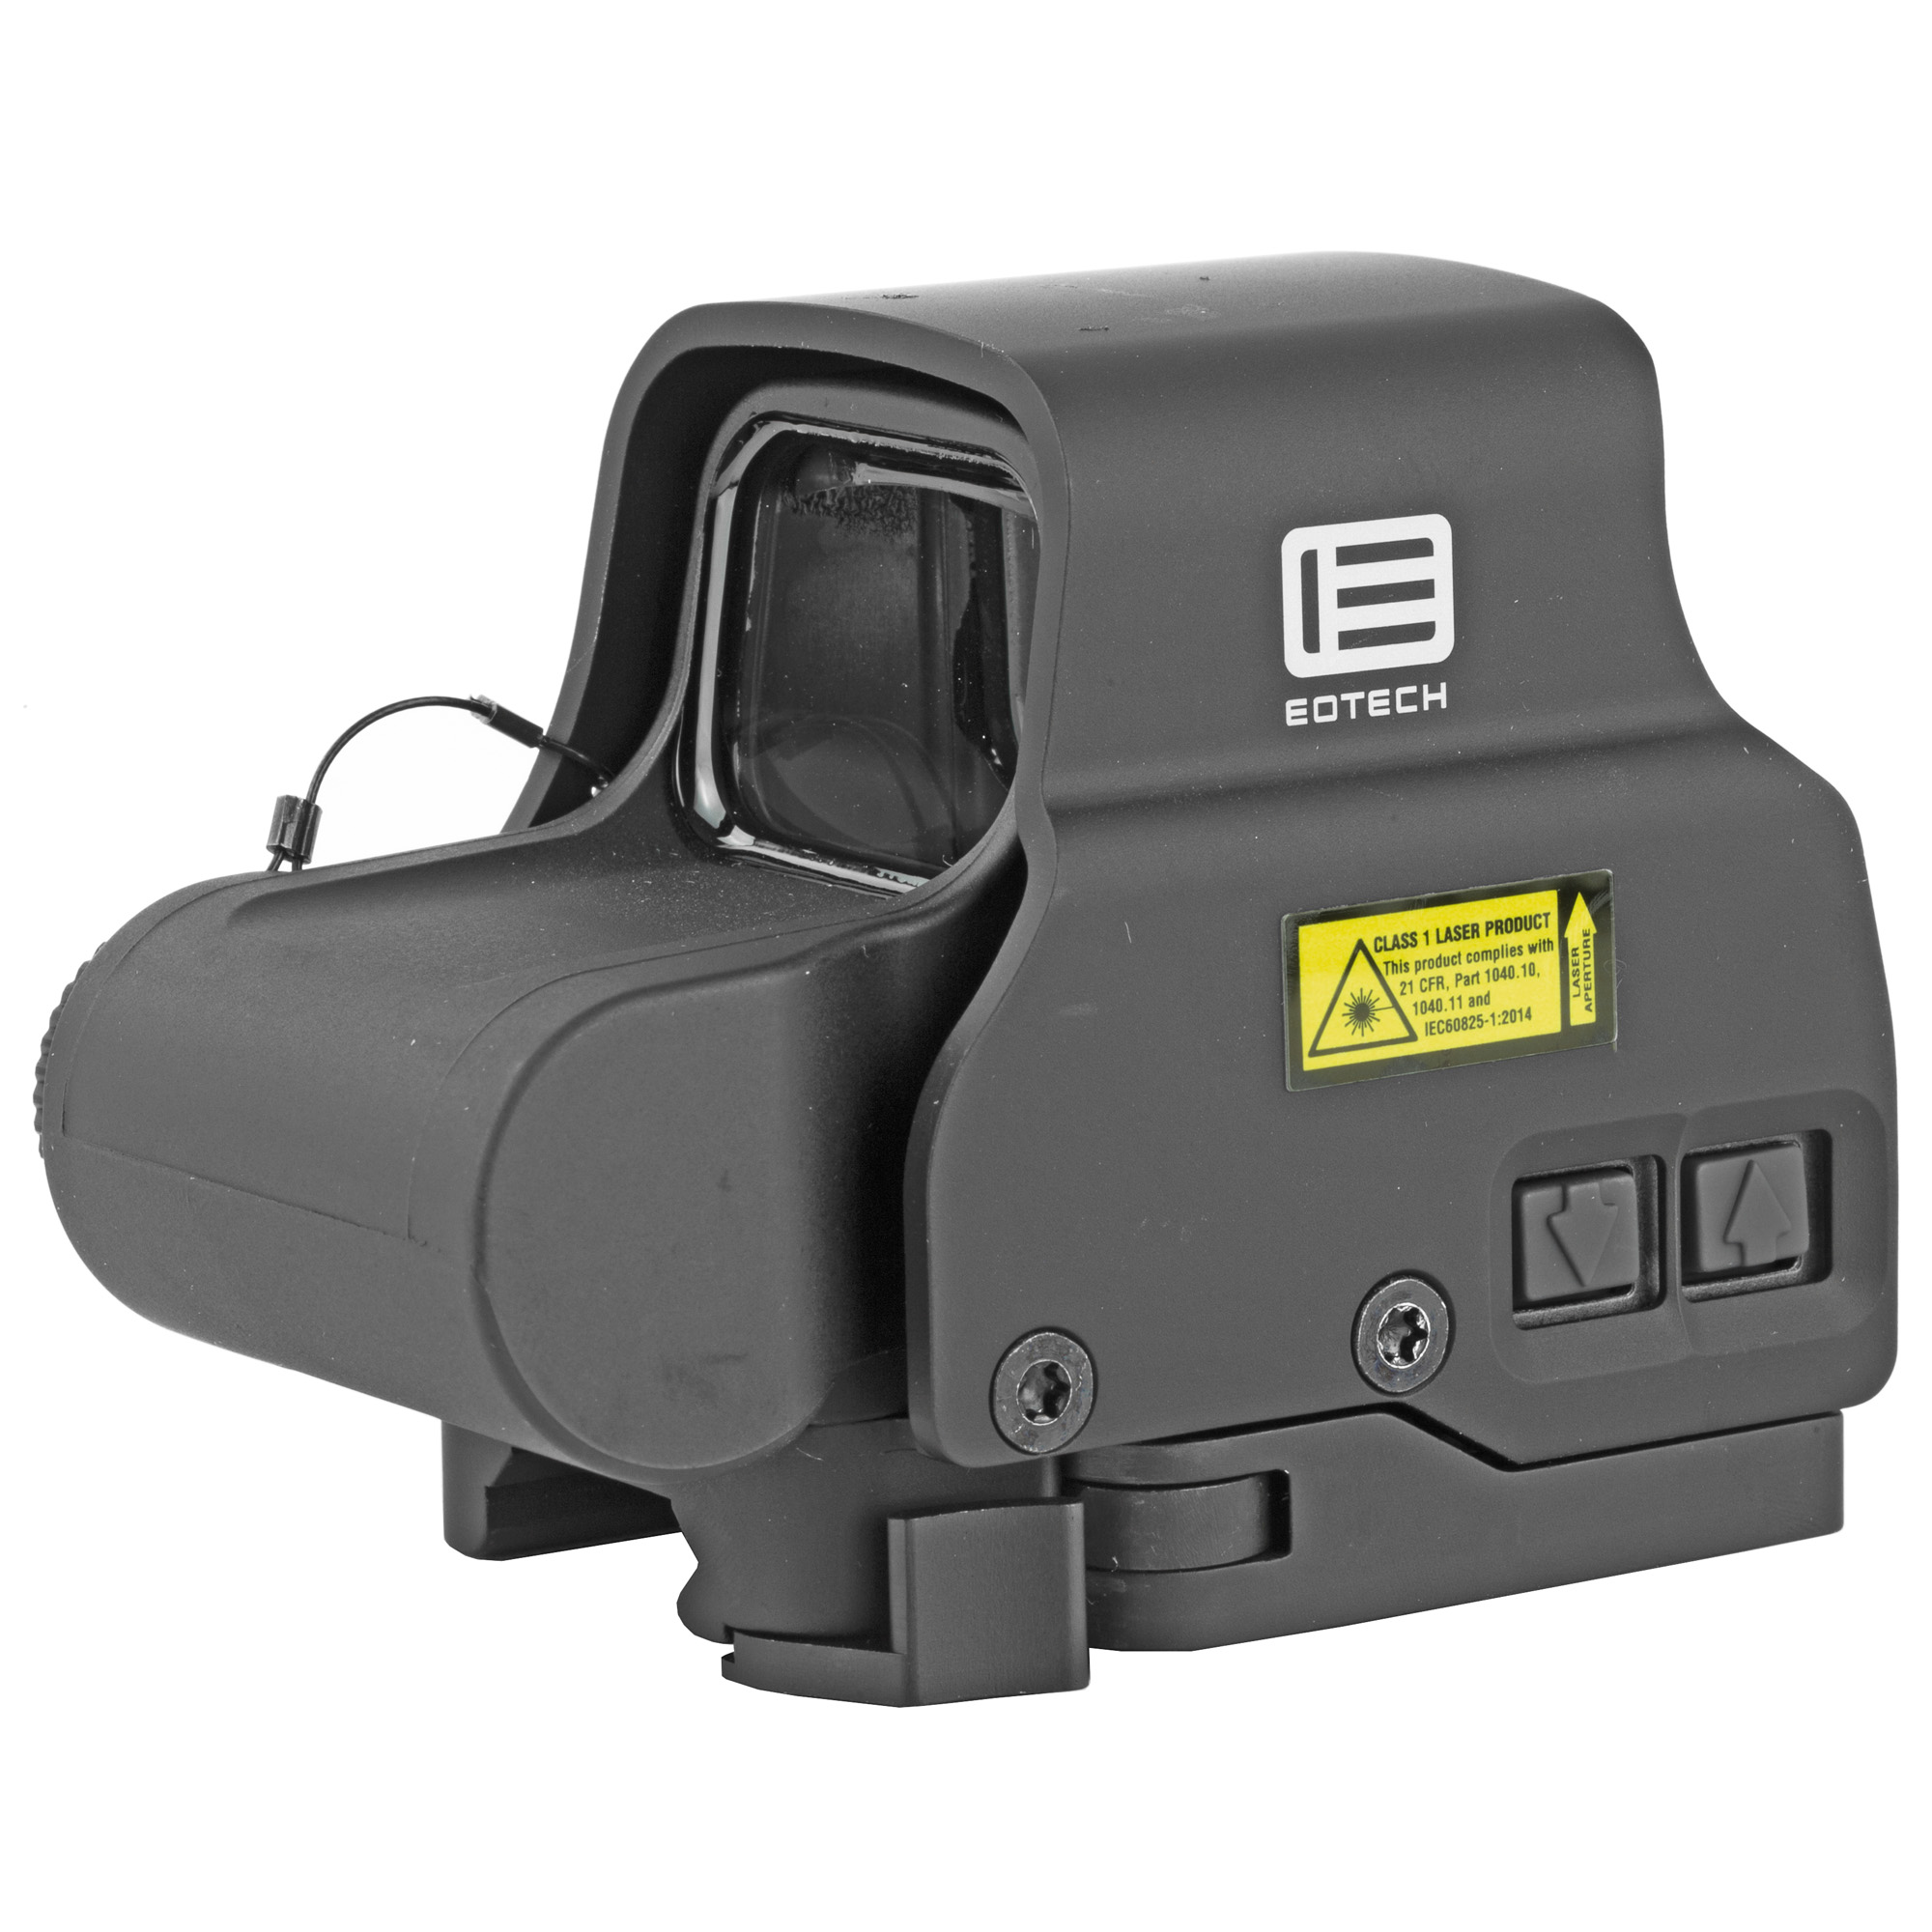 "The EXPS2 offers true 2-eyes-open shooting and provides an unparalleled targeting experience. The all-purpose EXPS2 features easy-to-adjust side buttons and a quick-detach lever. It has a transversely-mounted lithium 123 battery. The increased height of the EXPS provides iron sight co-witness access in the lower third of the viewing window. Whether you're using the sight for law enforcement or hunting"" the EXPS series sights are the premier optics in the line."